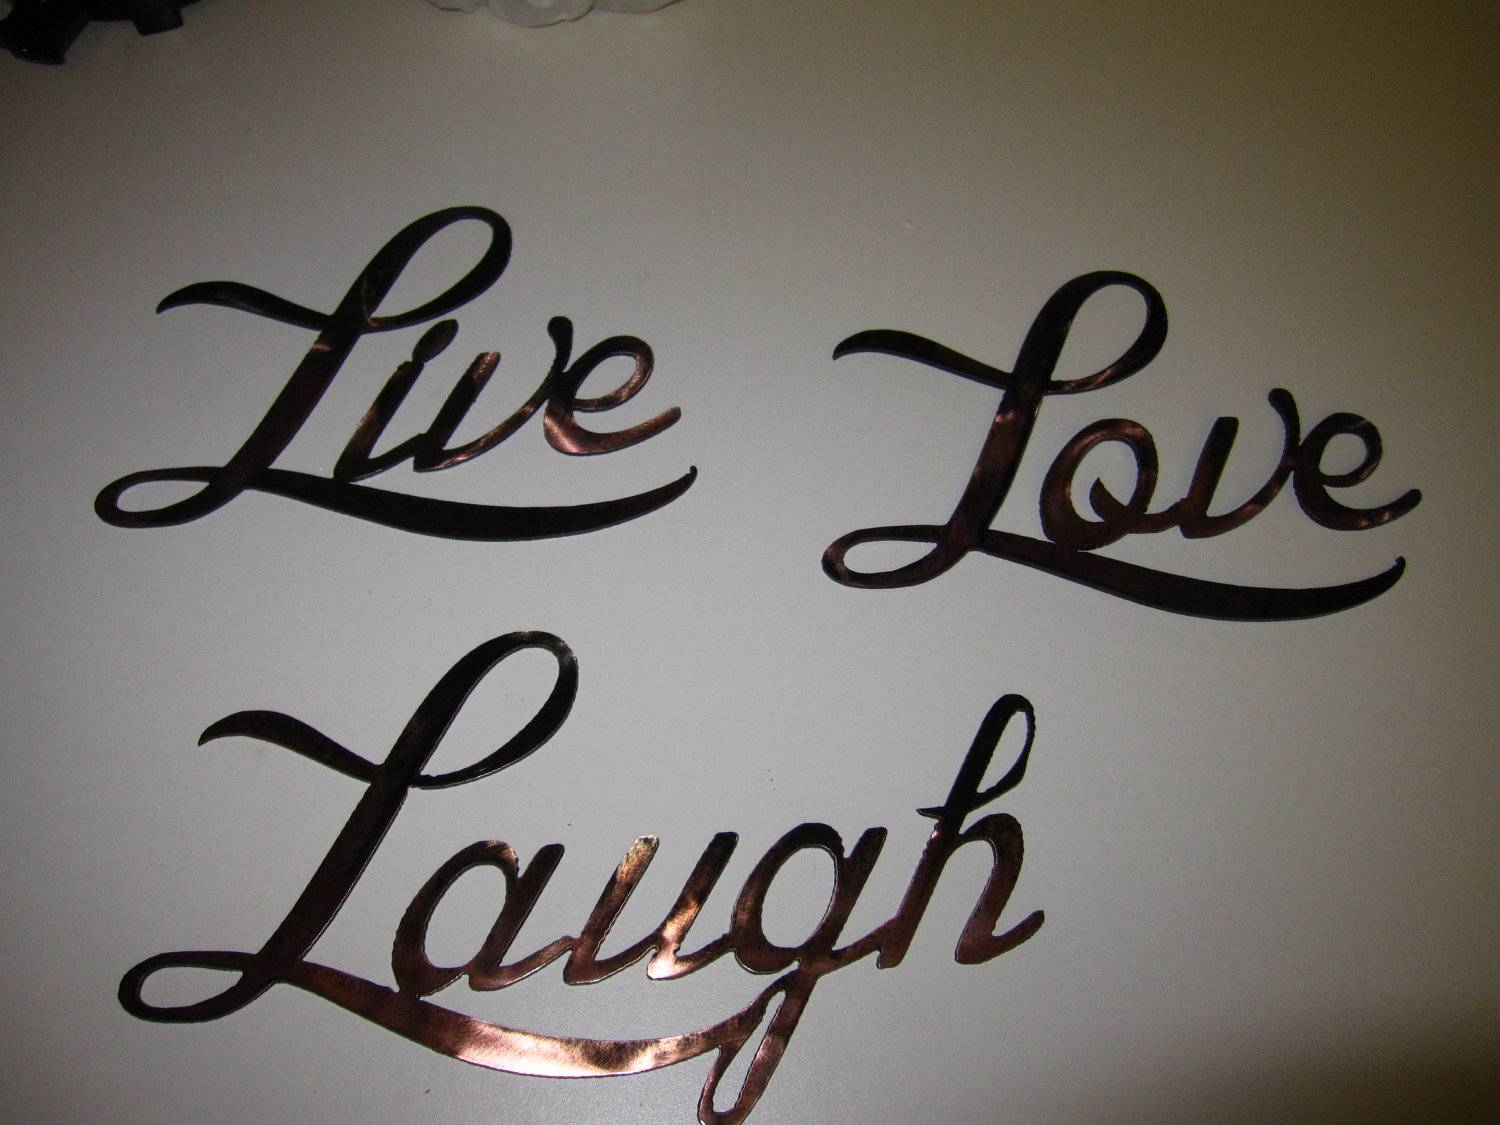 Wall Art: Marvelous Design Metal Wall Art Words Metal Wall Art For Regarding 2017 Live Love Laugh Metal Wall Decor (View 23 of 25)